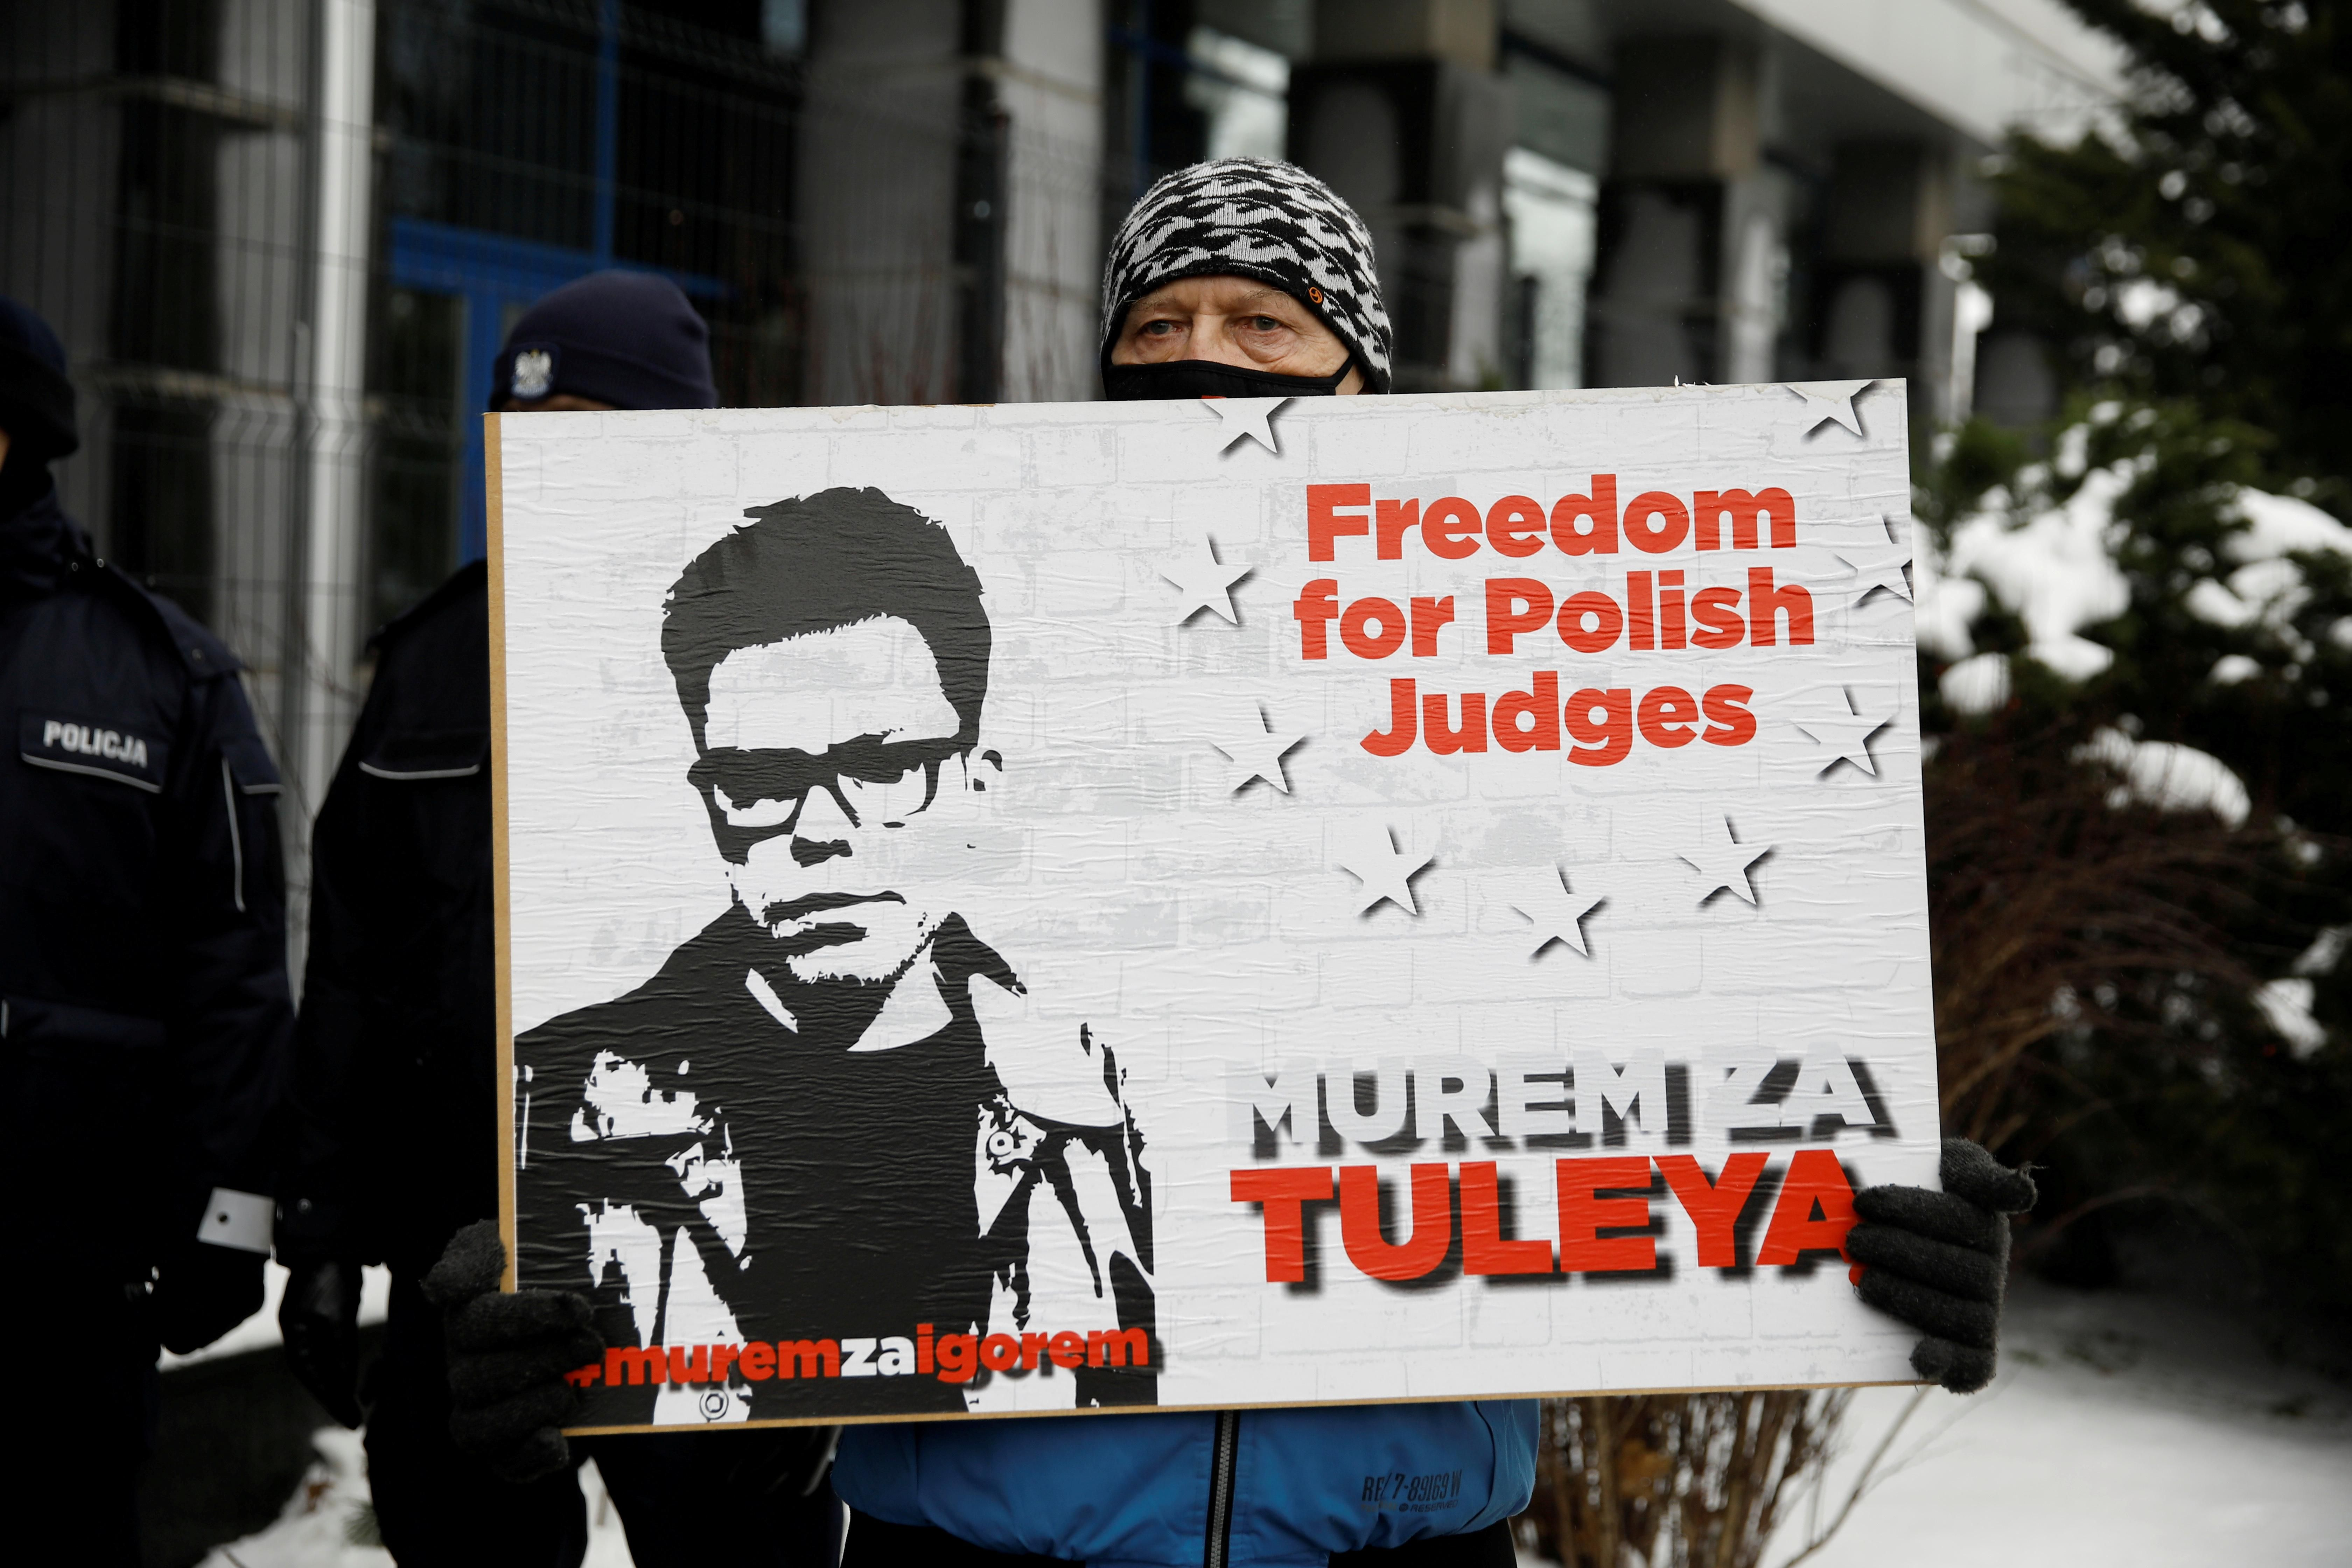 Supporter of Judge Igor Tuleya stands with a banner in front of the National Public Prosecutor's Office in Warsaw, Poland January 20, 2021.